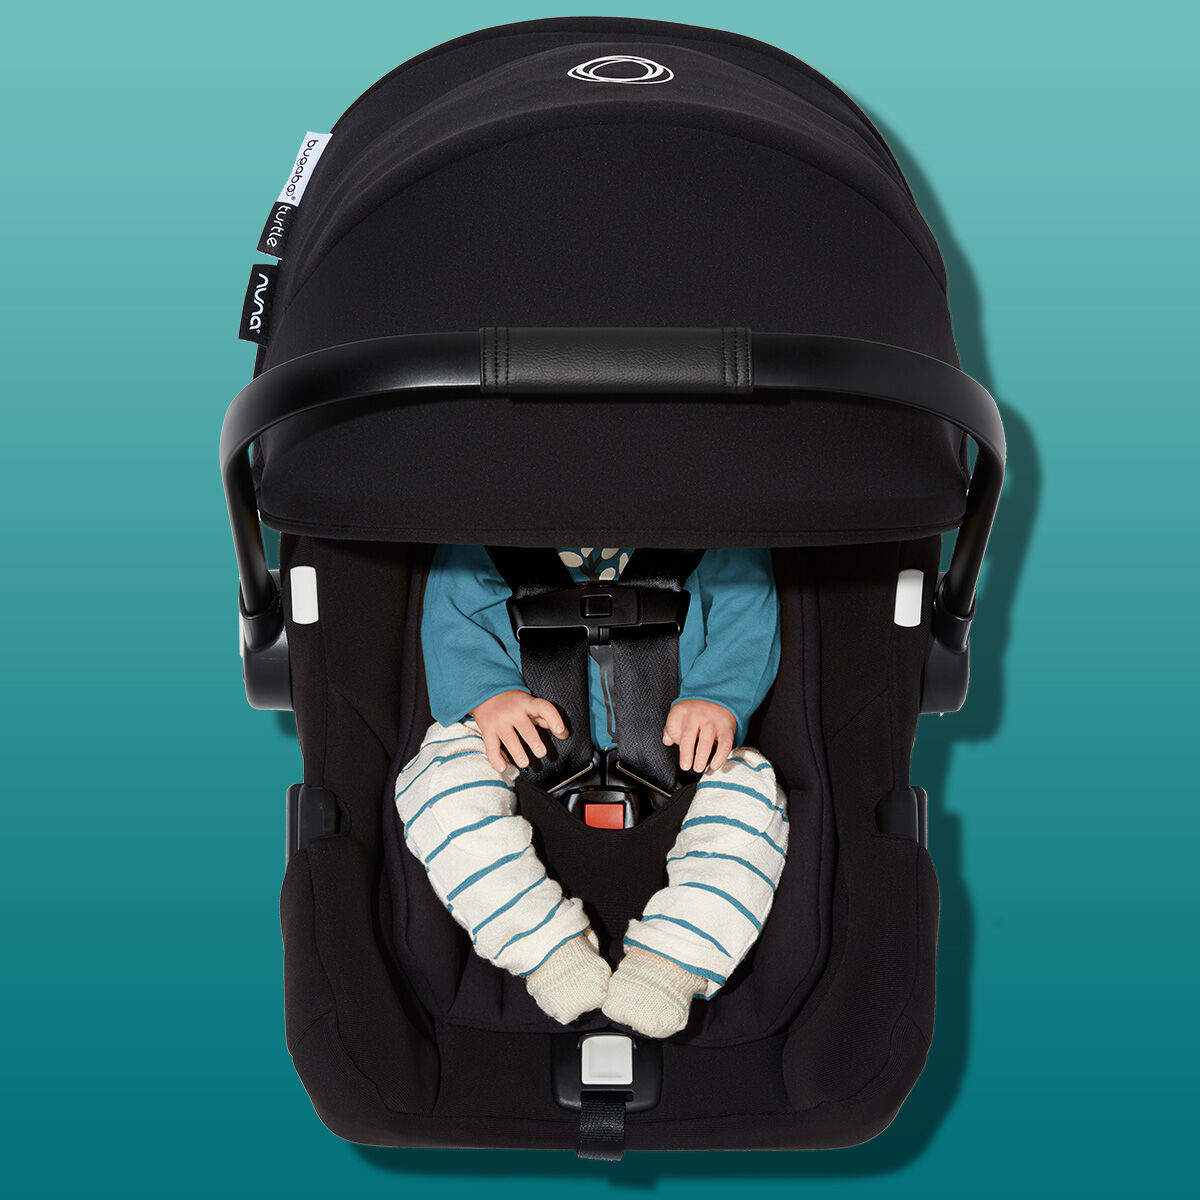 Turtle One car seat